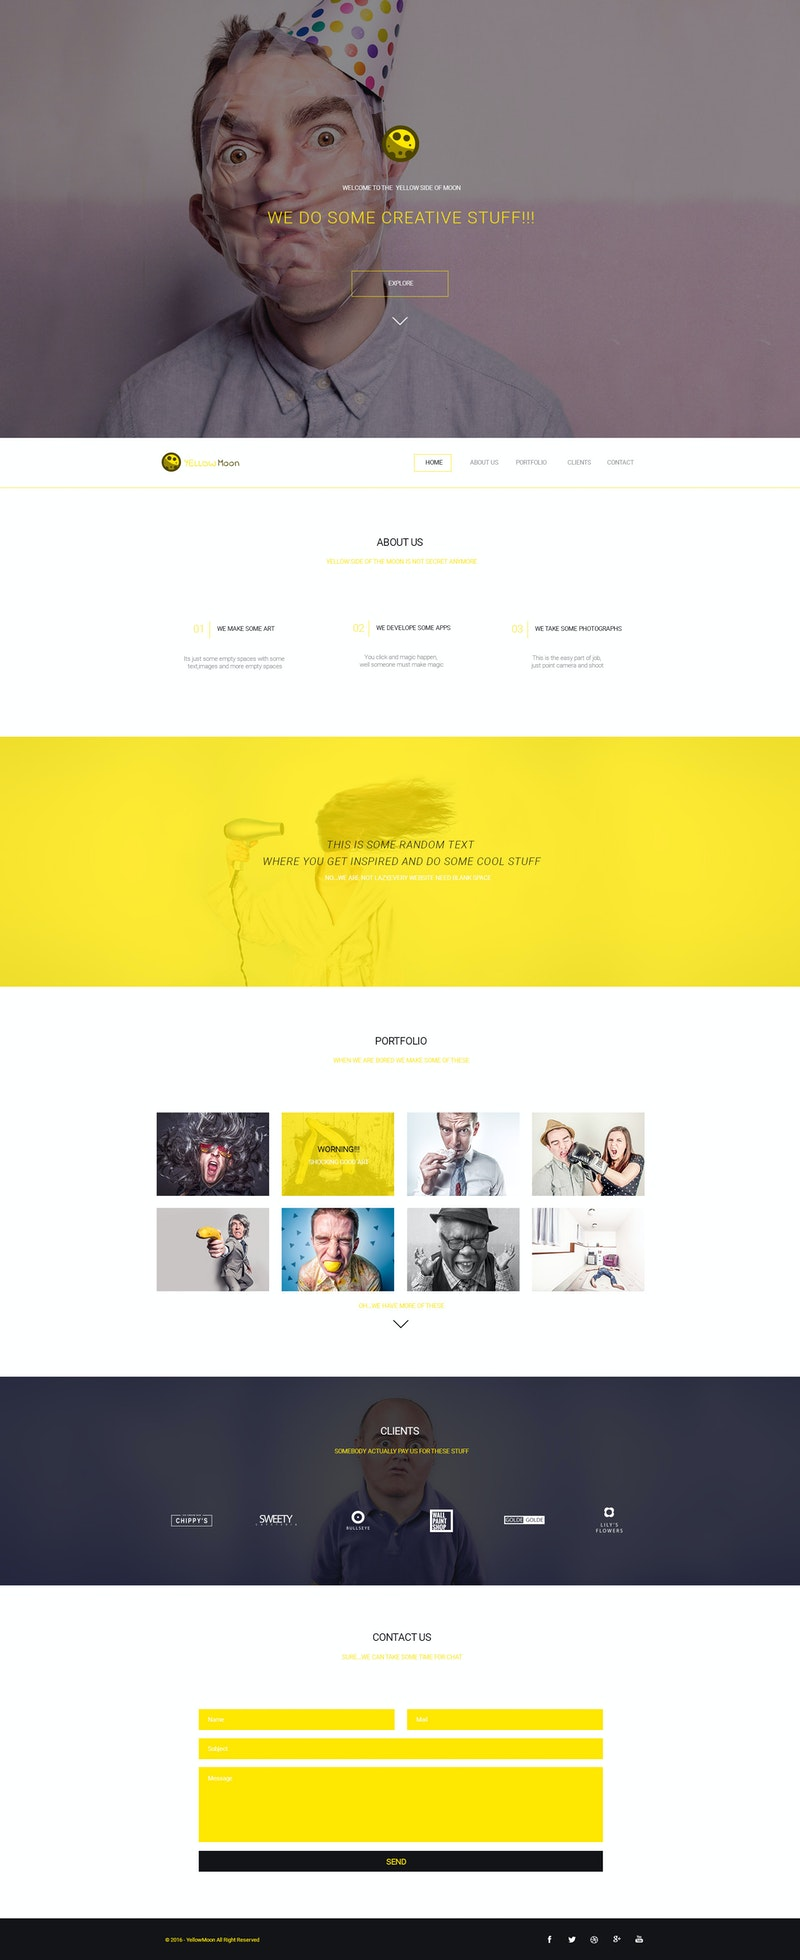 YellowMoon - Free PSD Landing Page preview